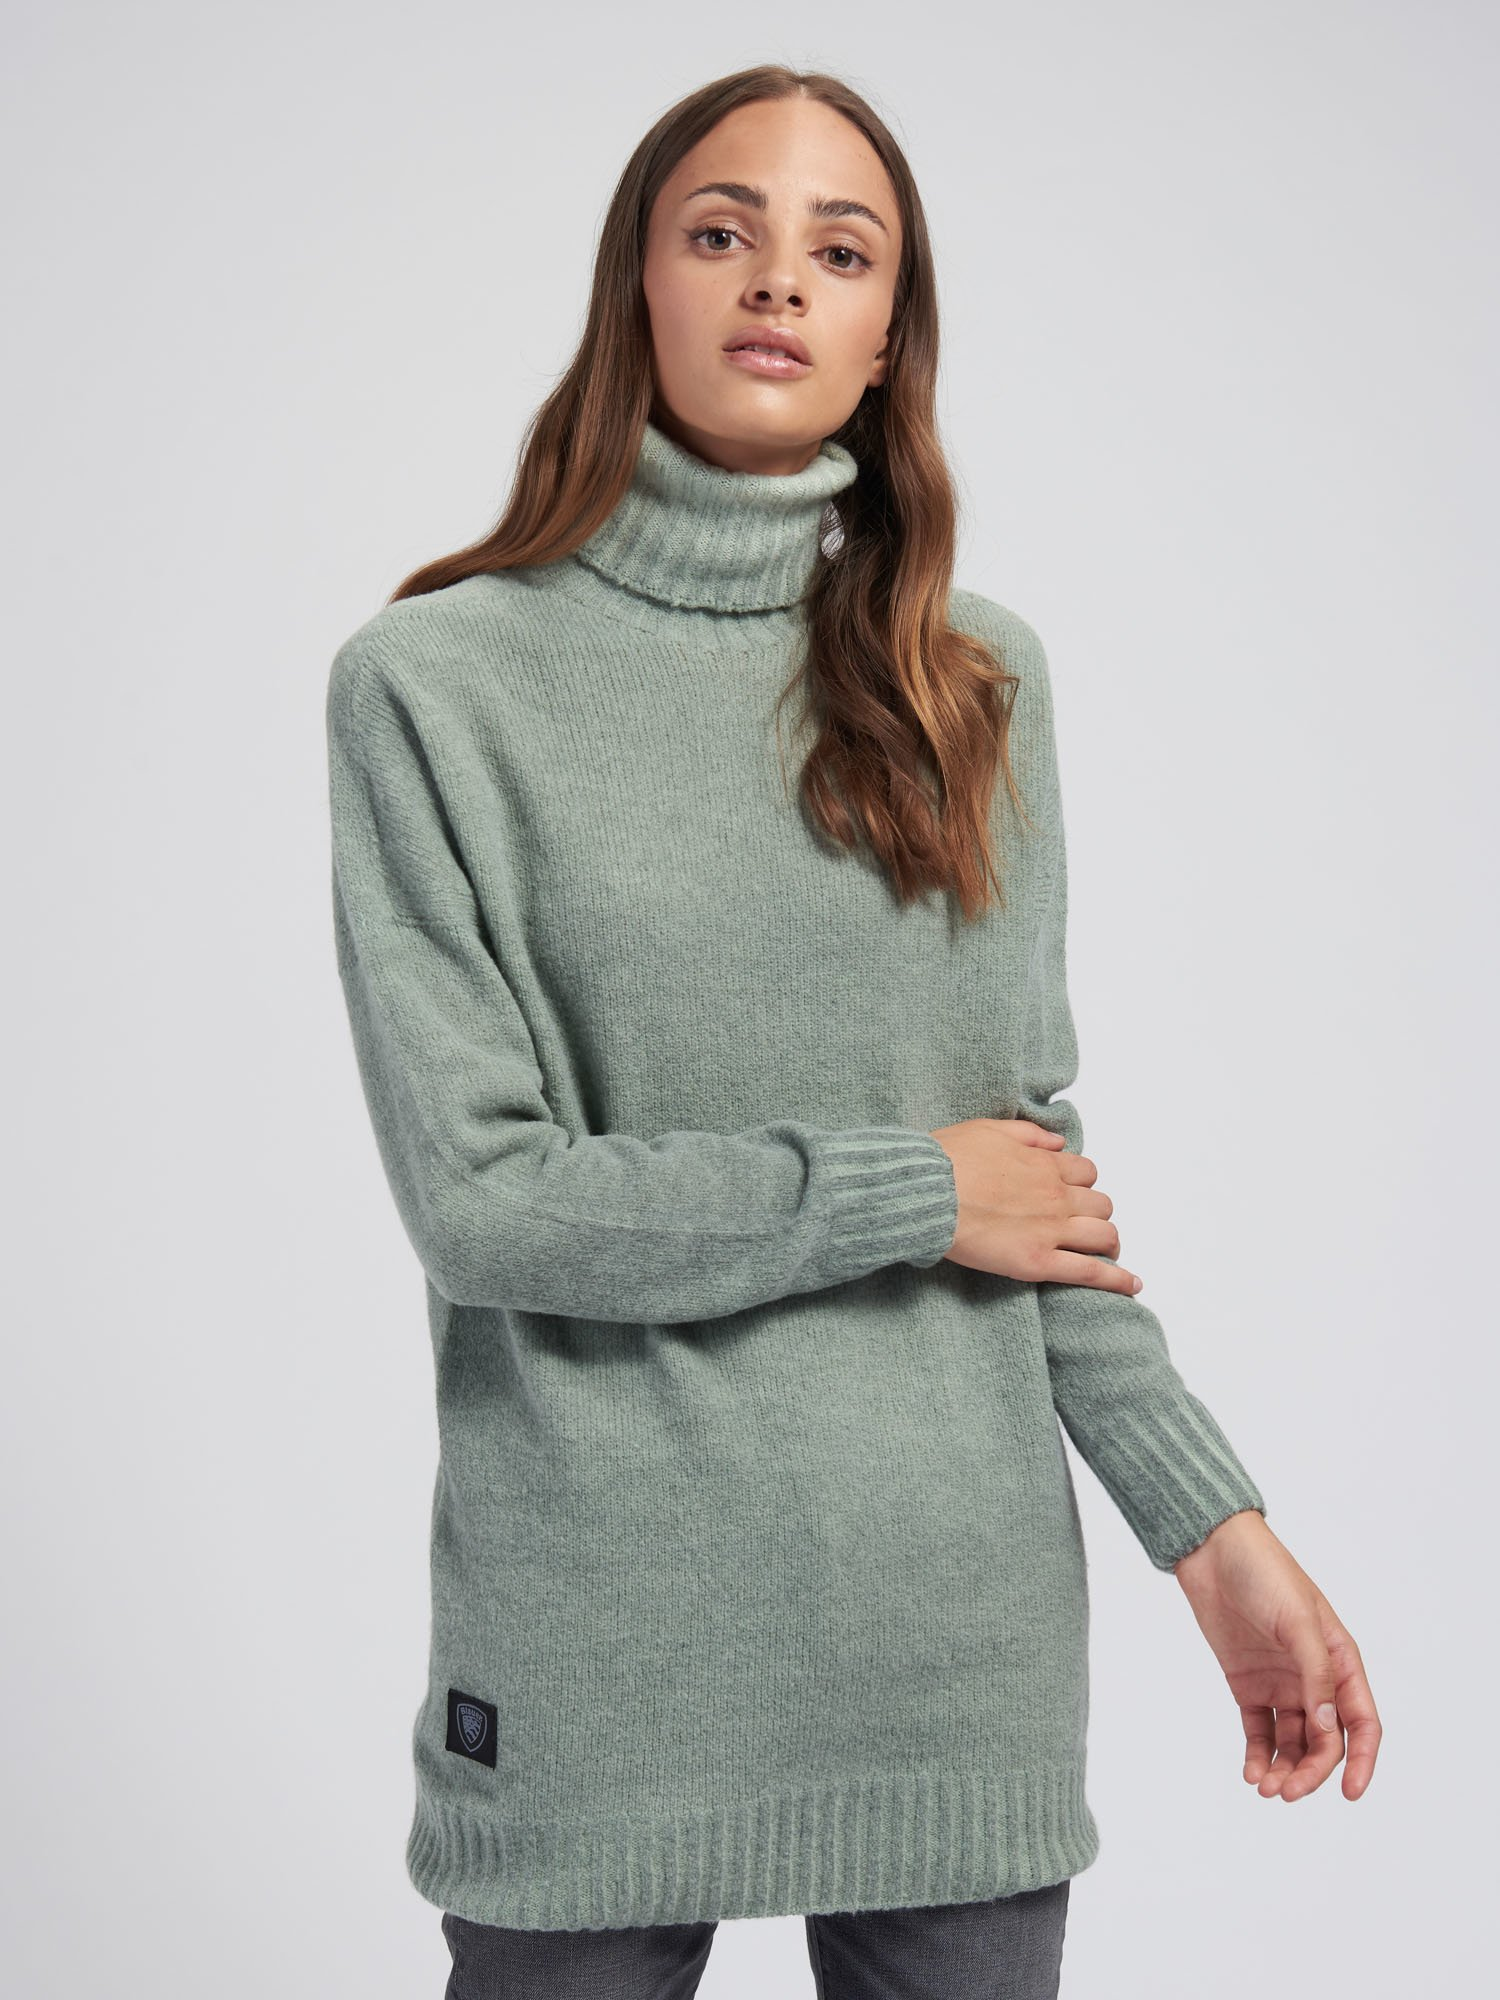 TURTLENECK WITH CUFF - Blauer